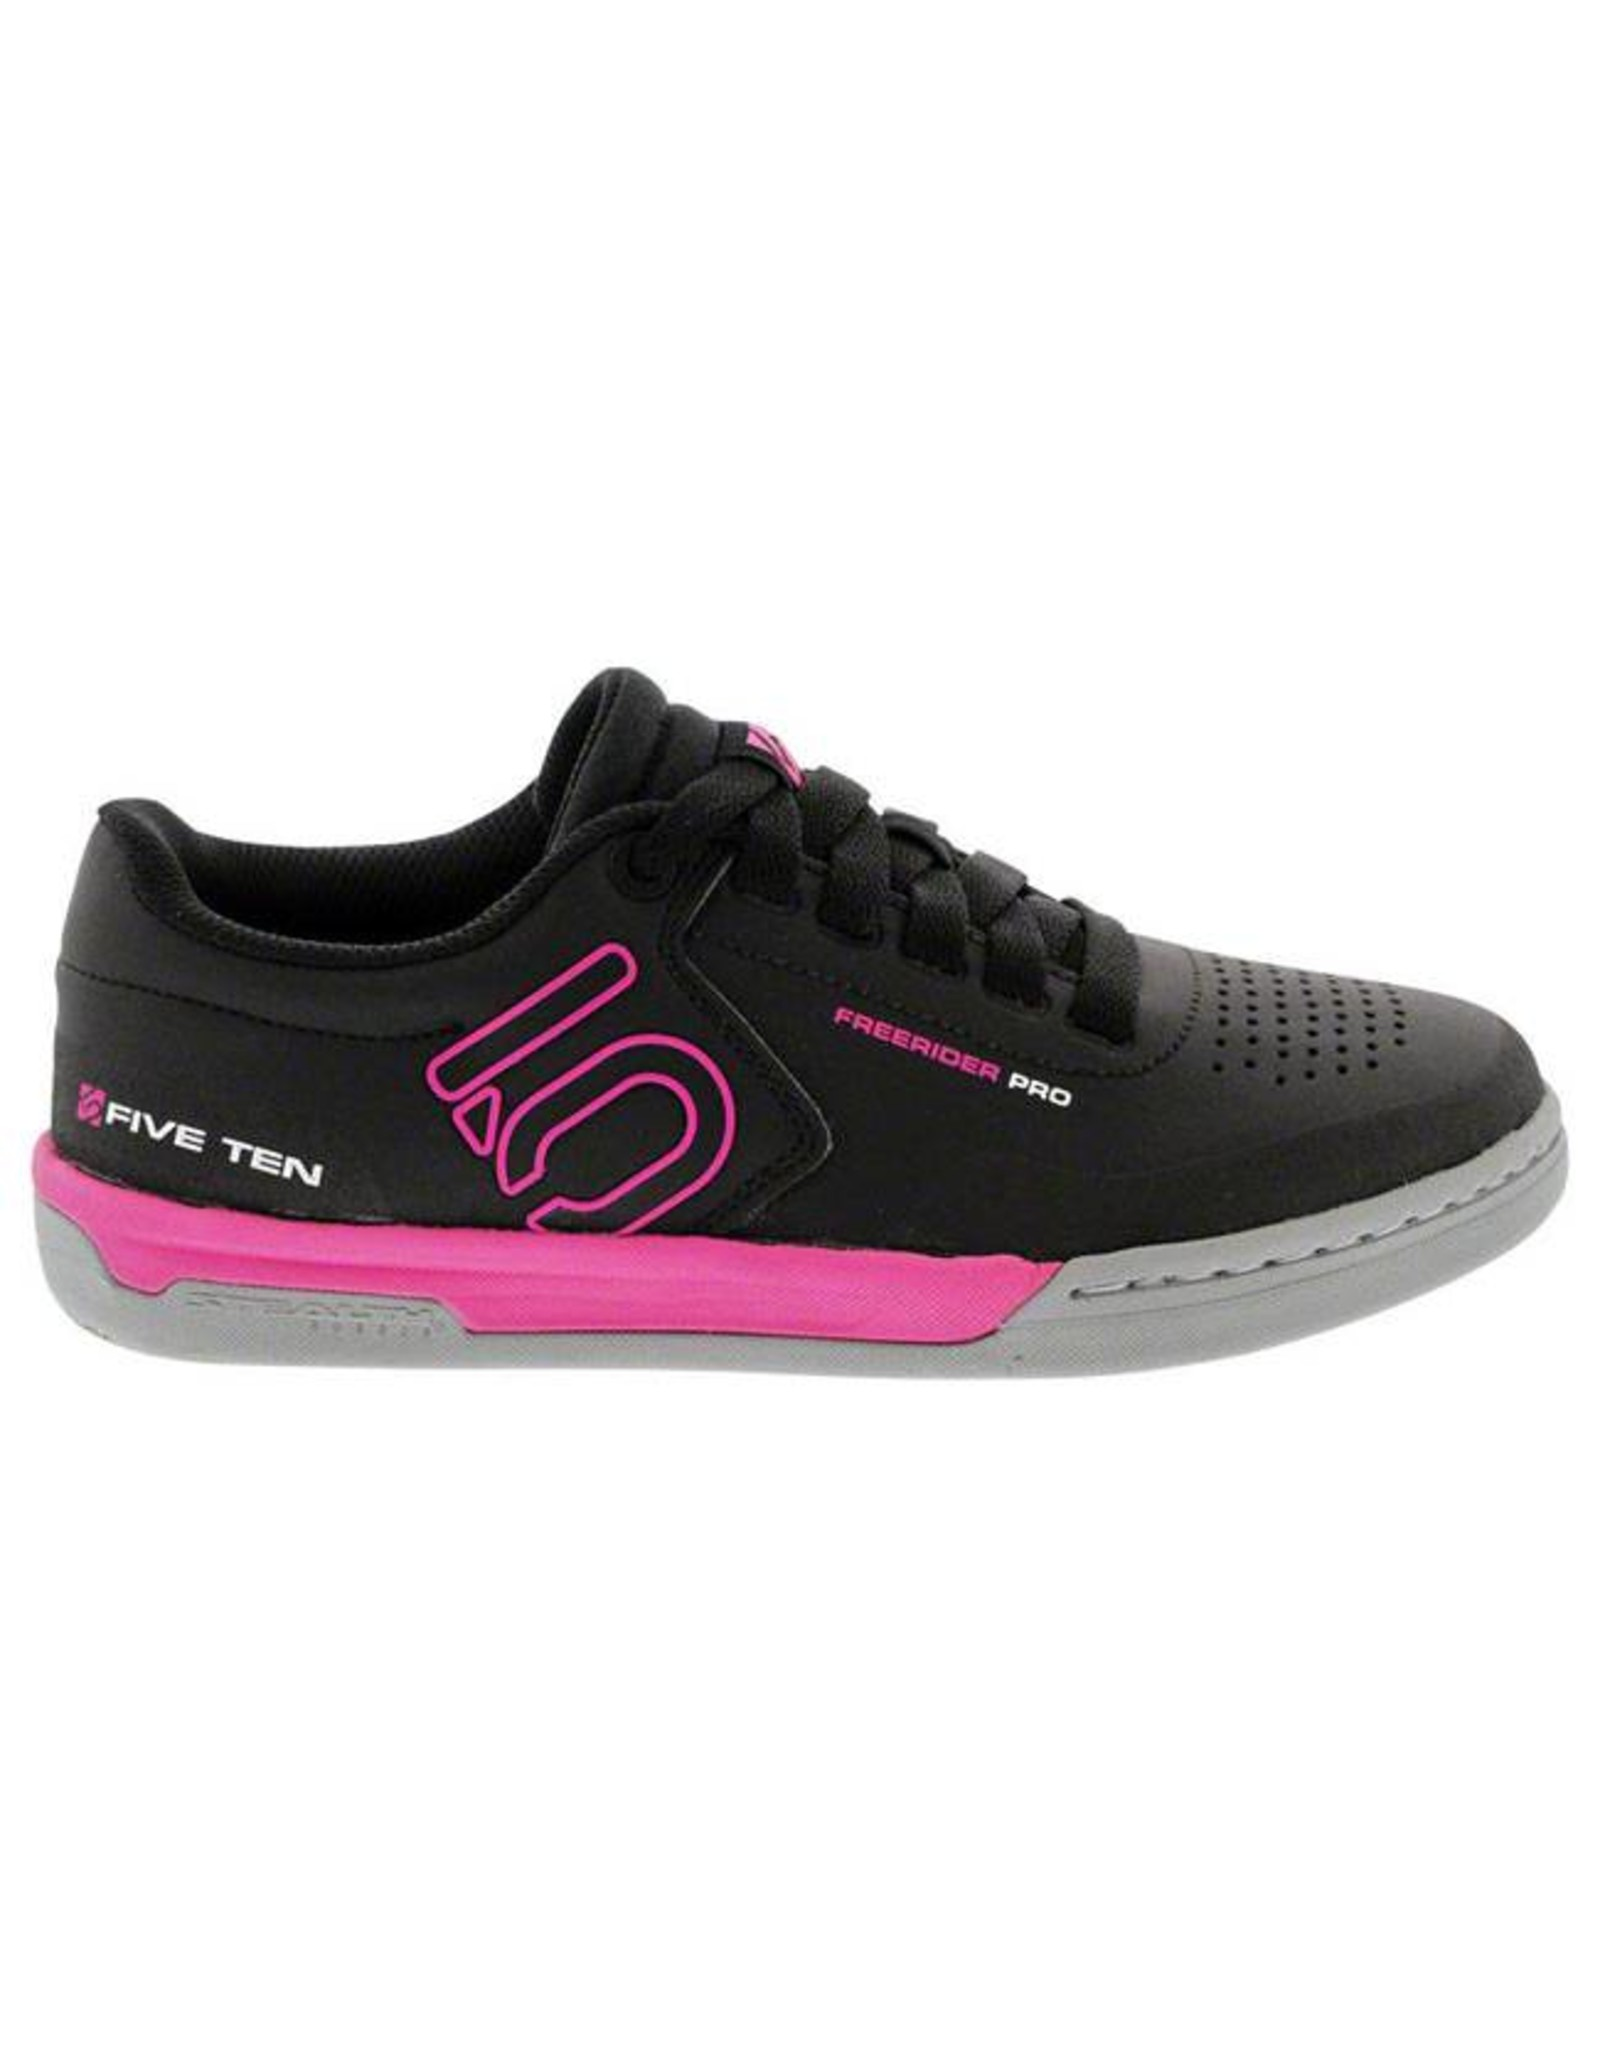 Five Ten Five Ten Freerider Pro Women's Flat Pedal Shoe: Black/Pink 7.5